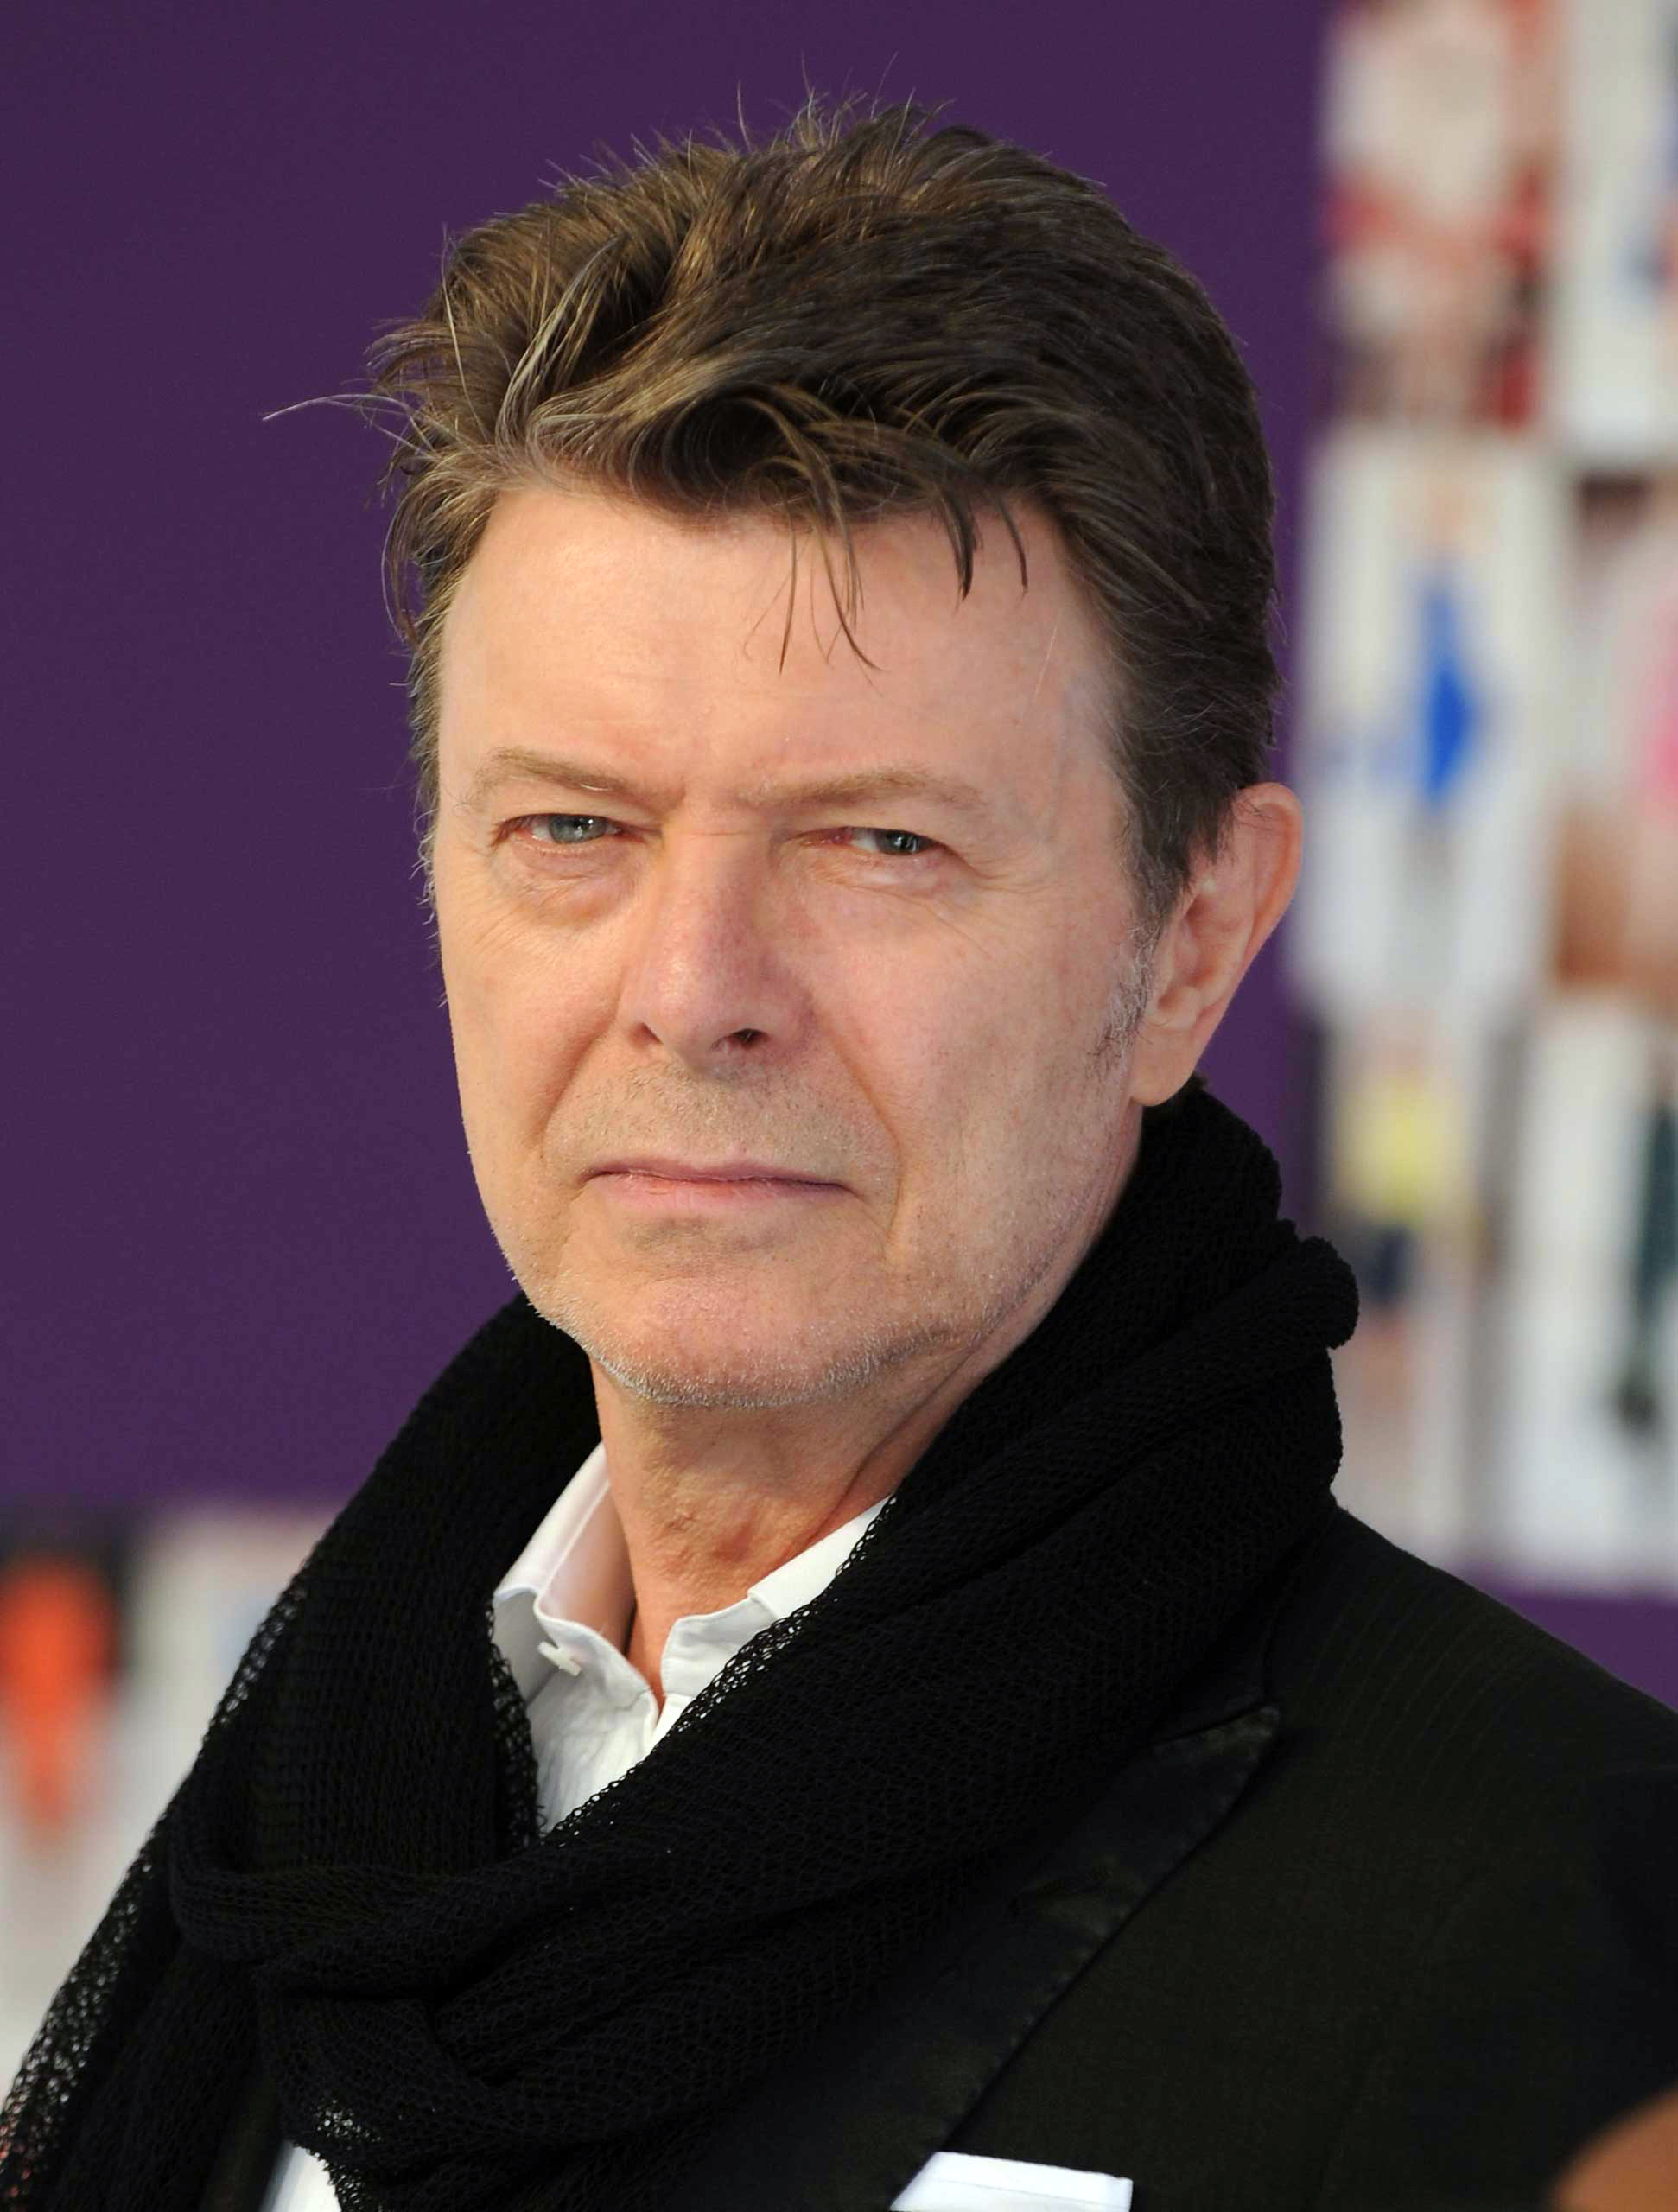 Musician David Bowie attends the 2010 CFDA Fashion Awards at Alice Tully Hall at Lincoln Center in New York Cit yon June 7, 2010 .